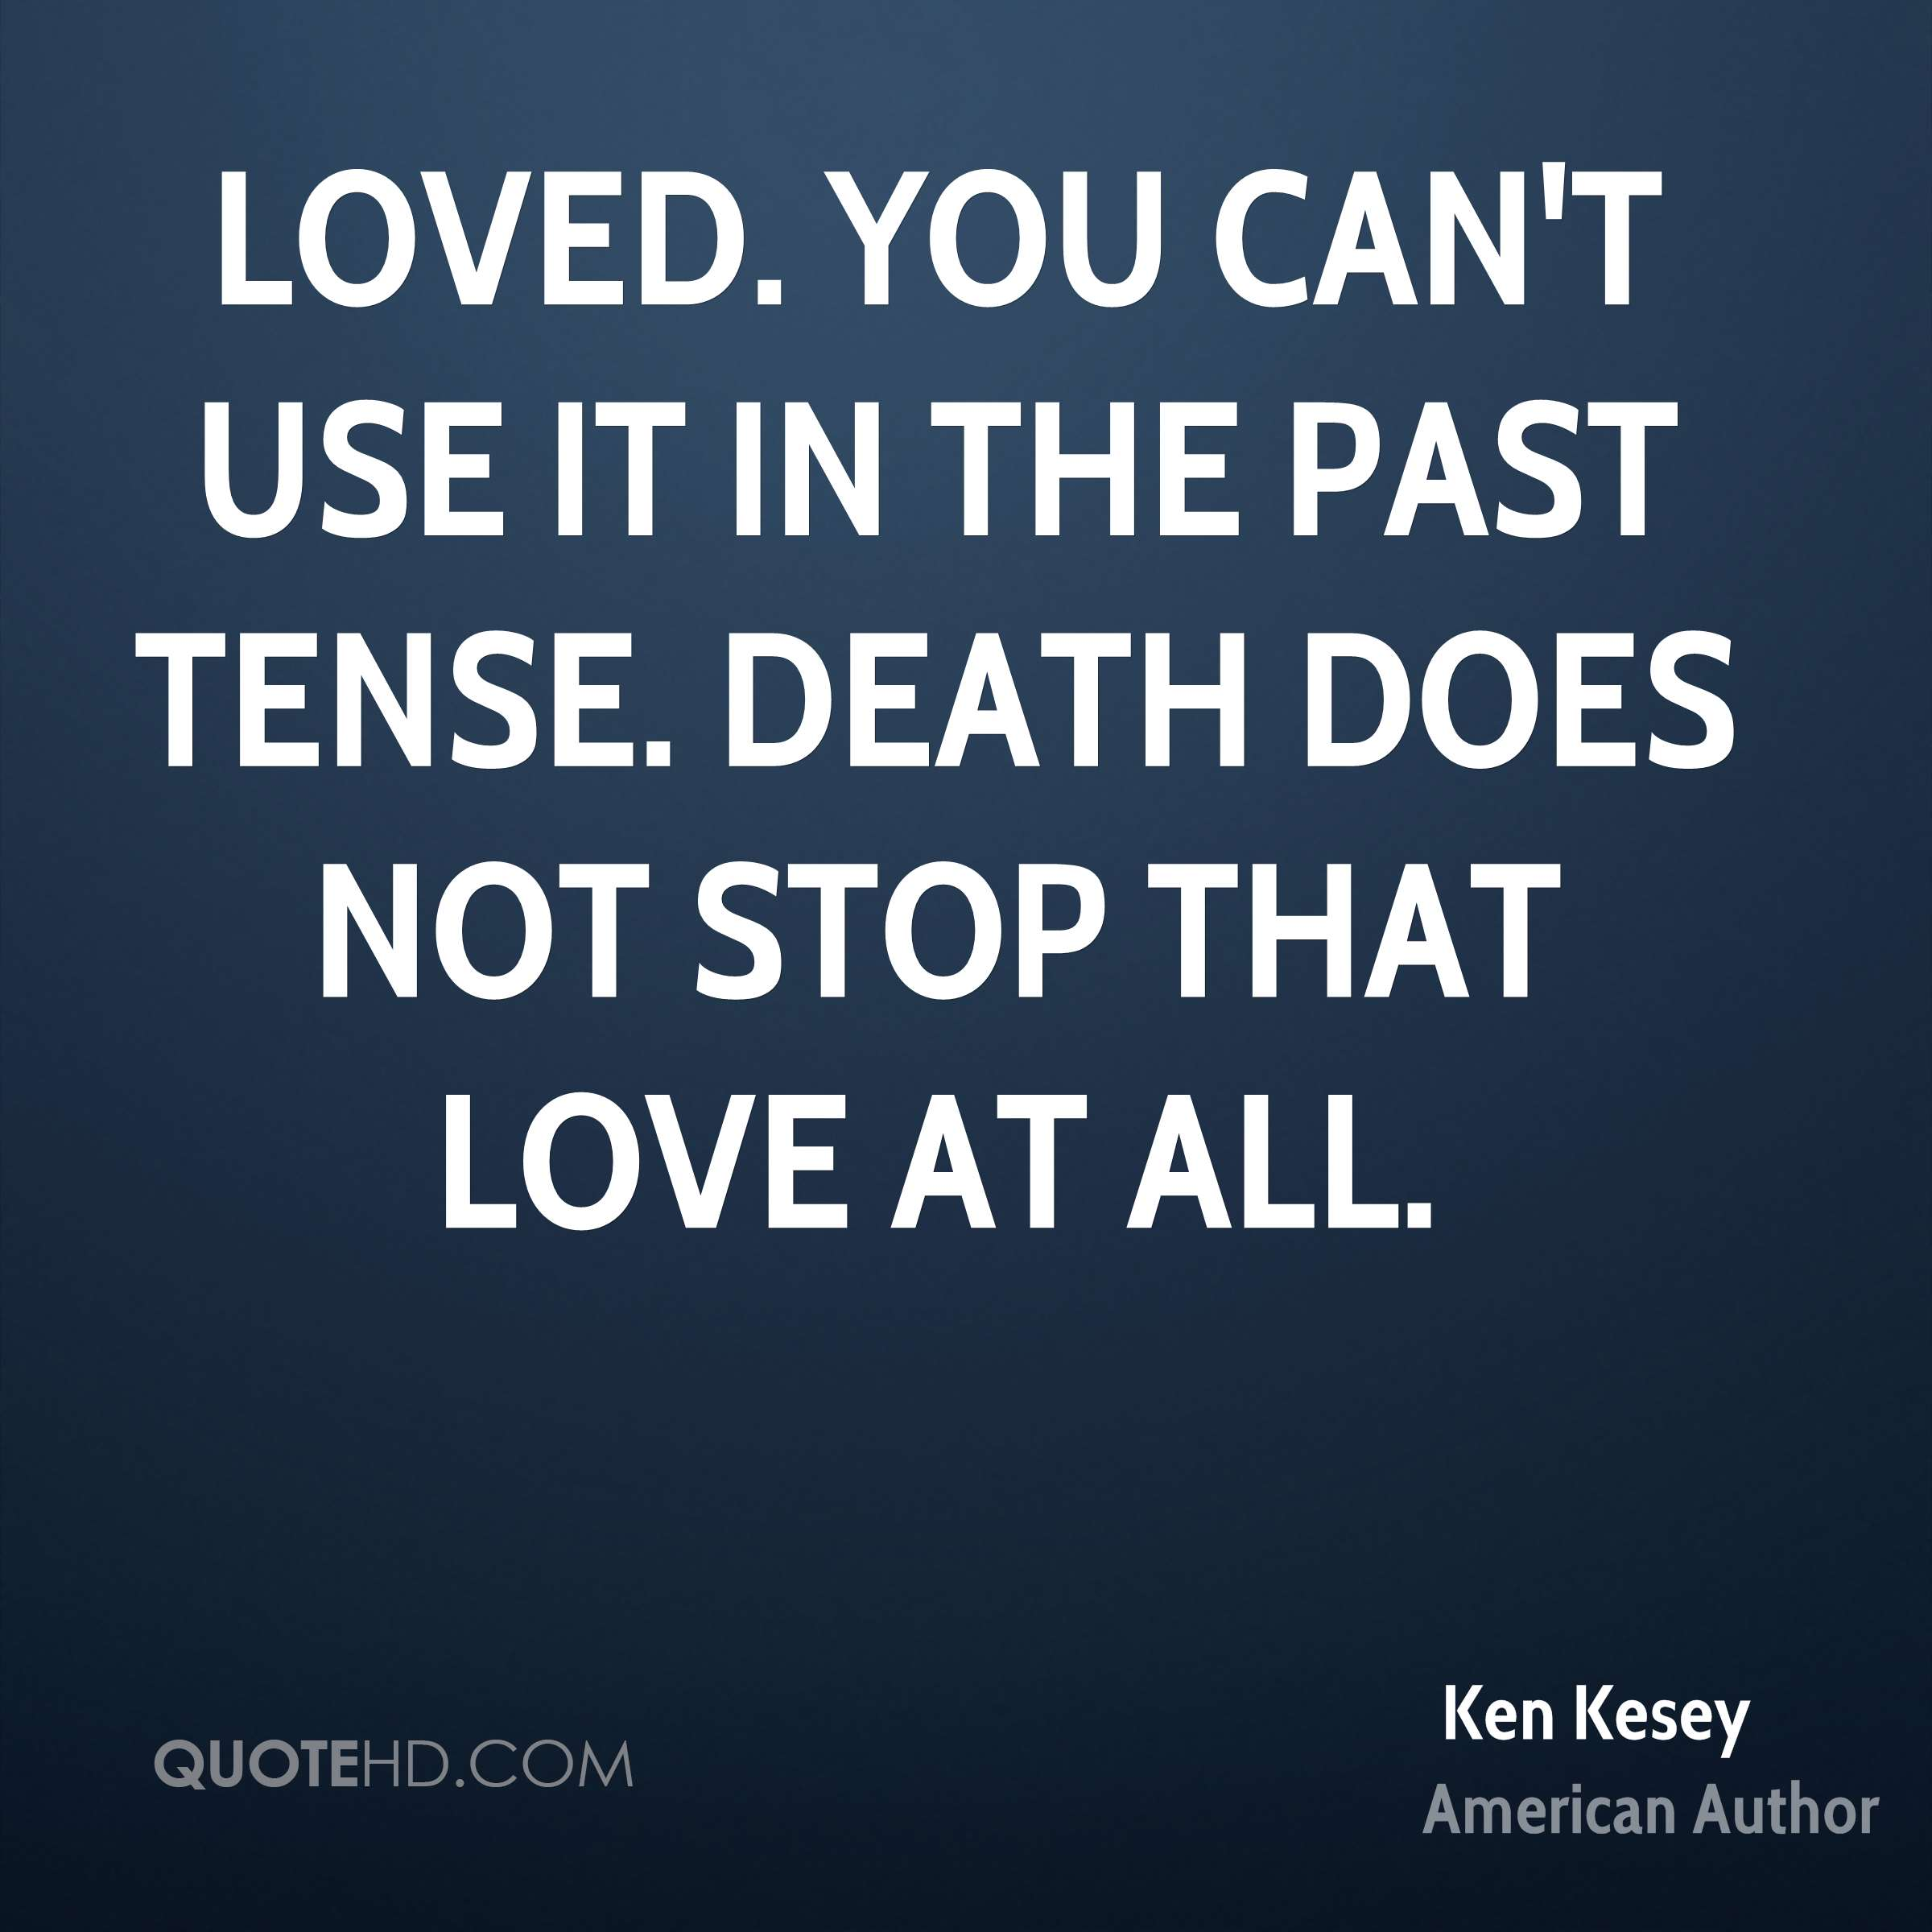 Kenneth Love Quotes: Ken Kesey Death Quotes